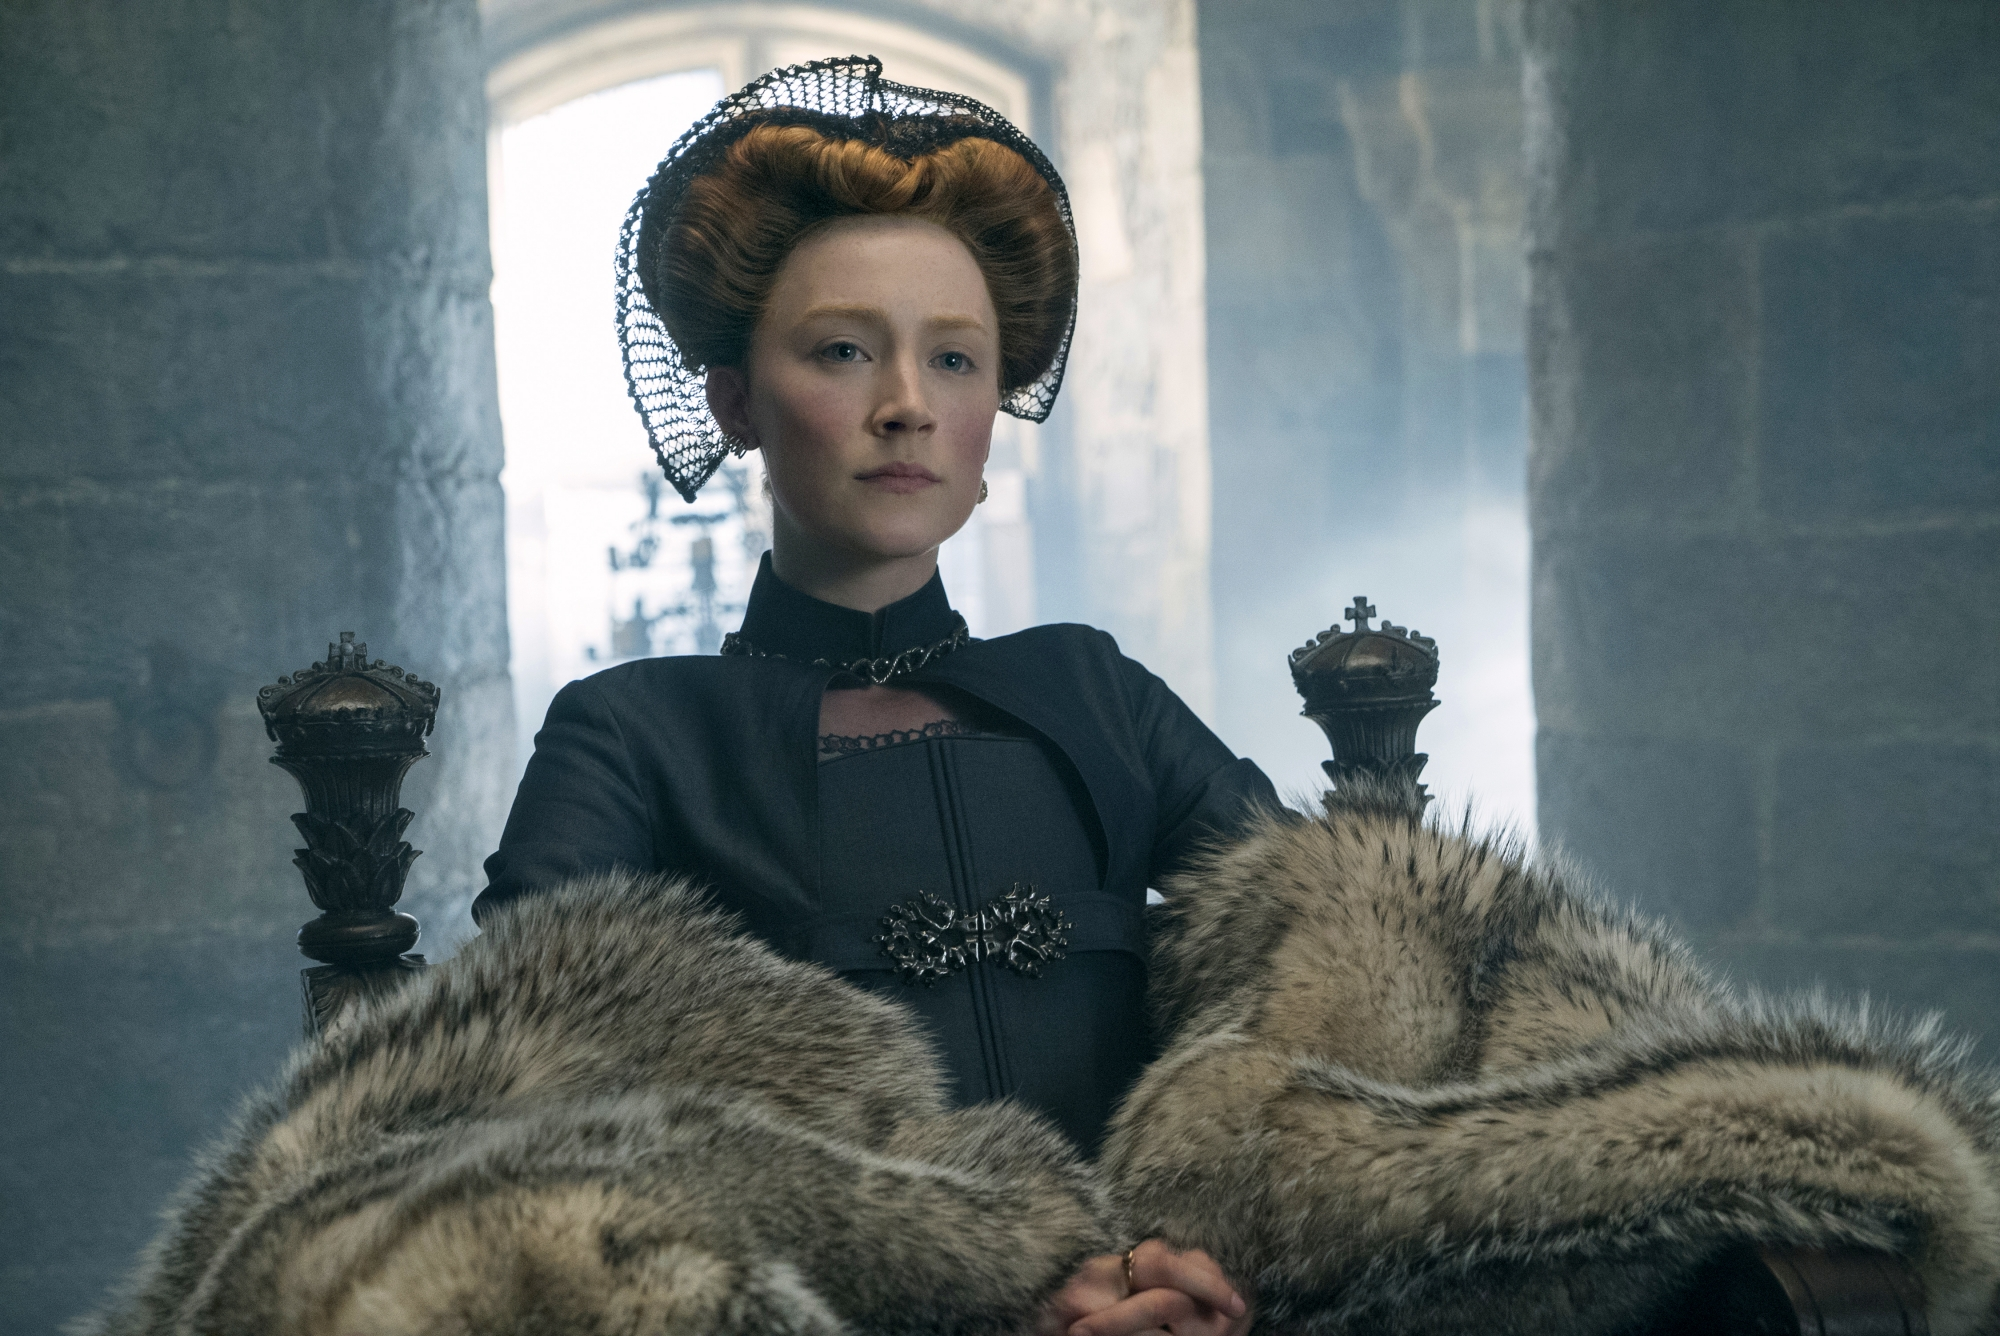 'For an authentic female orgasm, we need to see her face': Mary Queen Of Scots director says focus nothing to do with rating